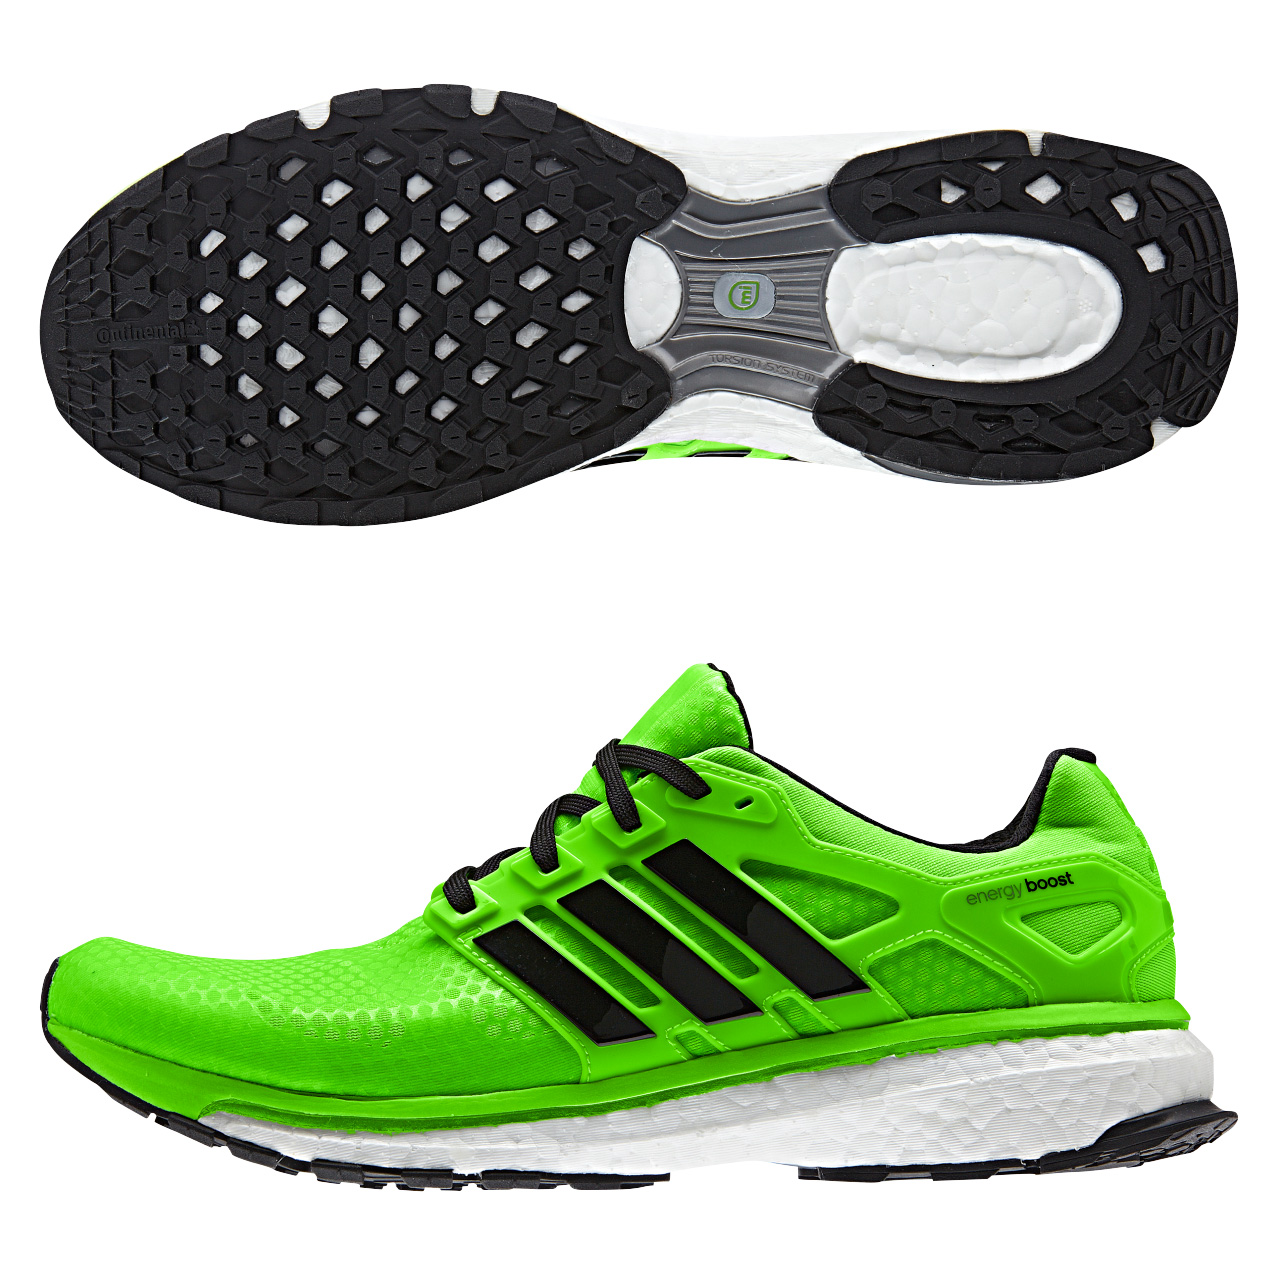 Adidas Energy Boost 2 ATR Trainers Lt Green